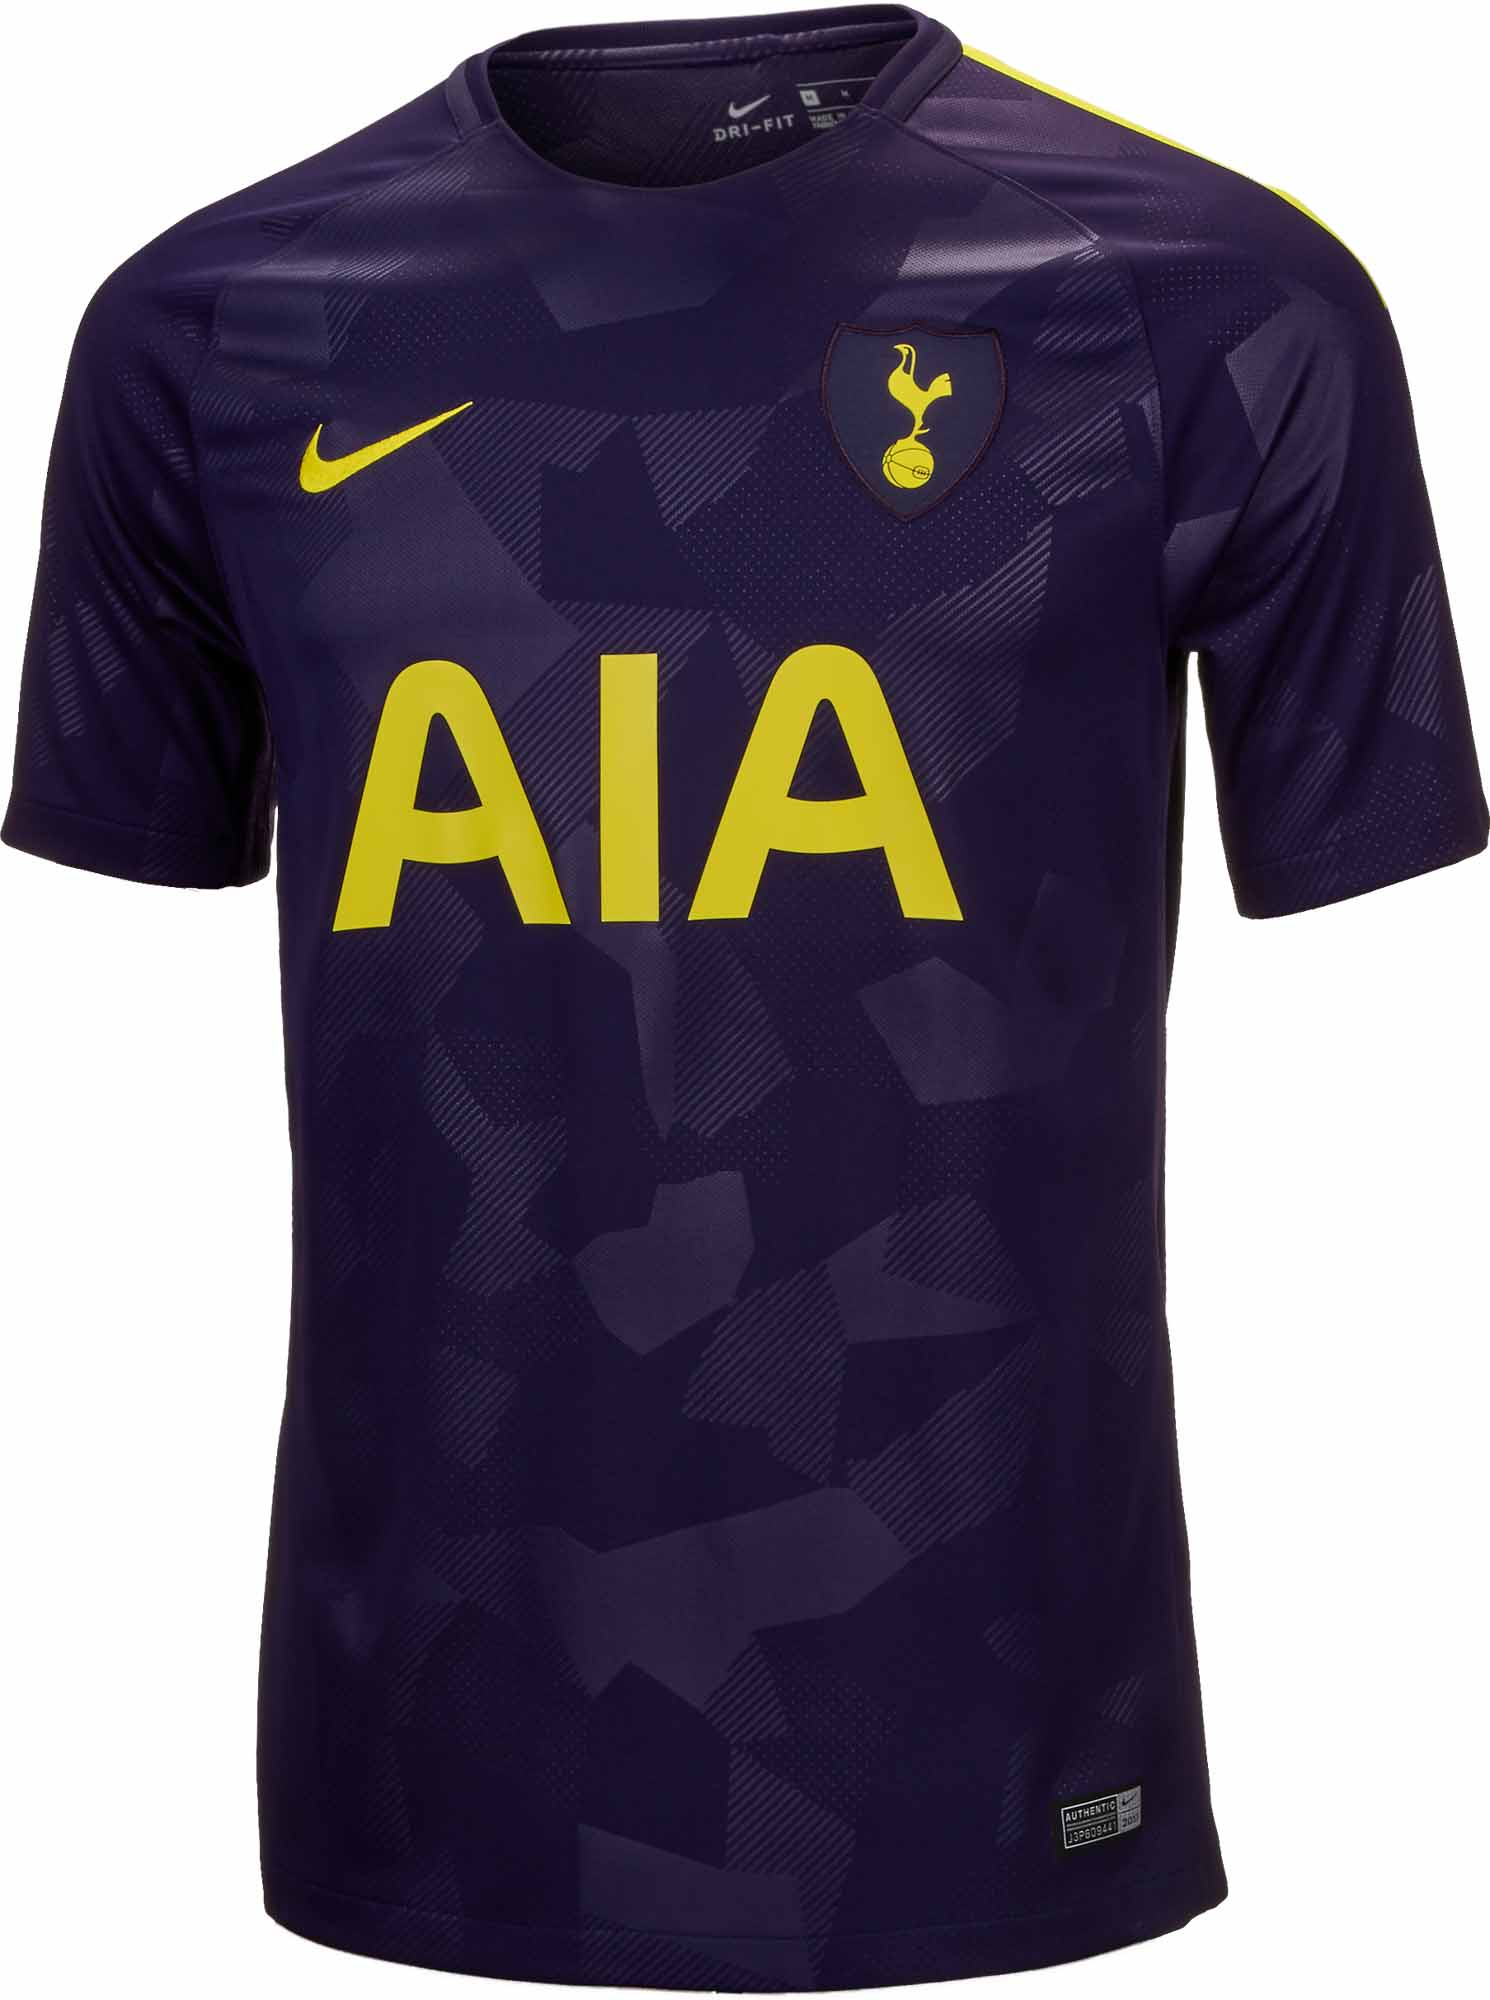 competitive price 981ea 4955c Nike Tottenham 3rd Jersey 2017-18 - Soccer Master